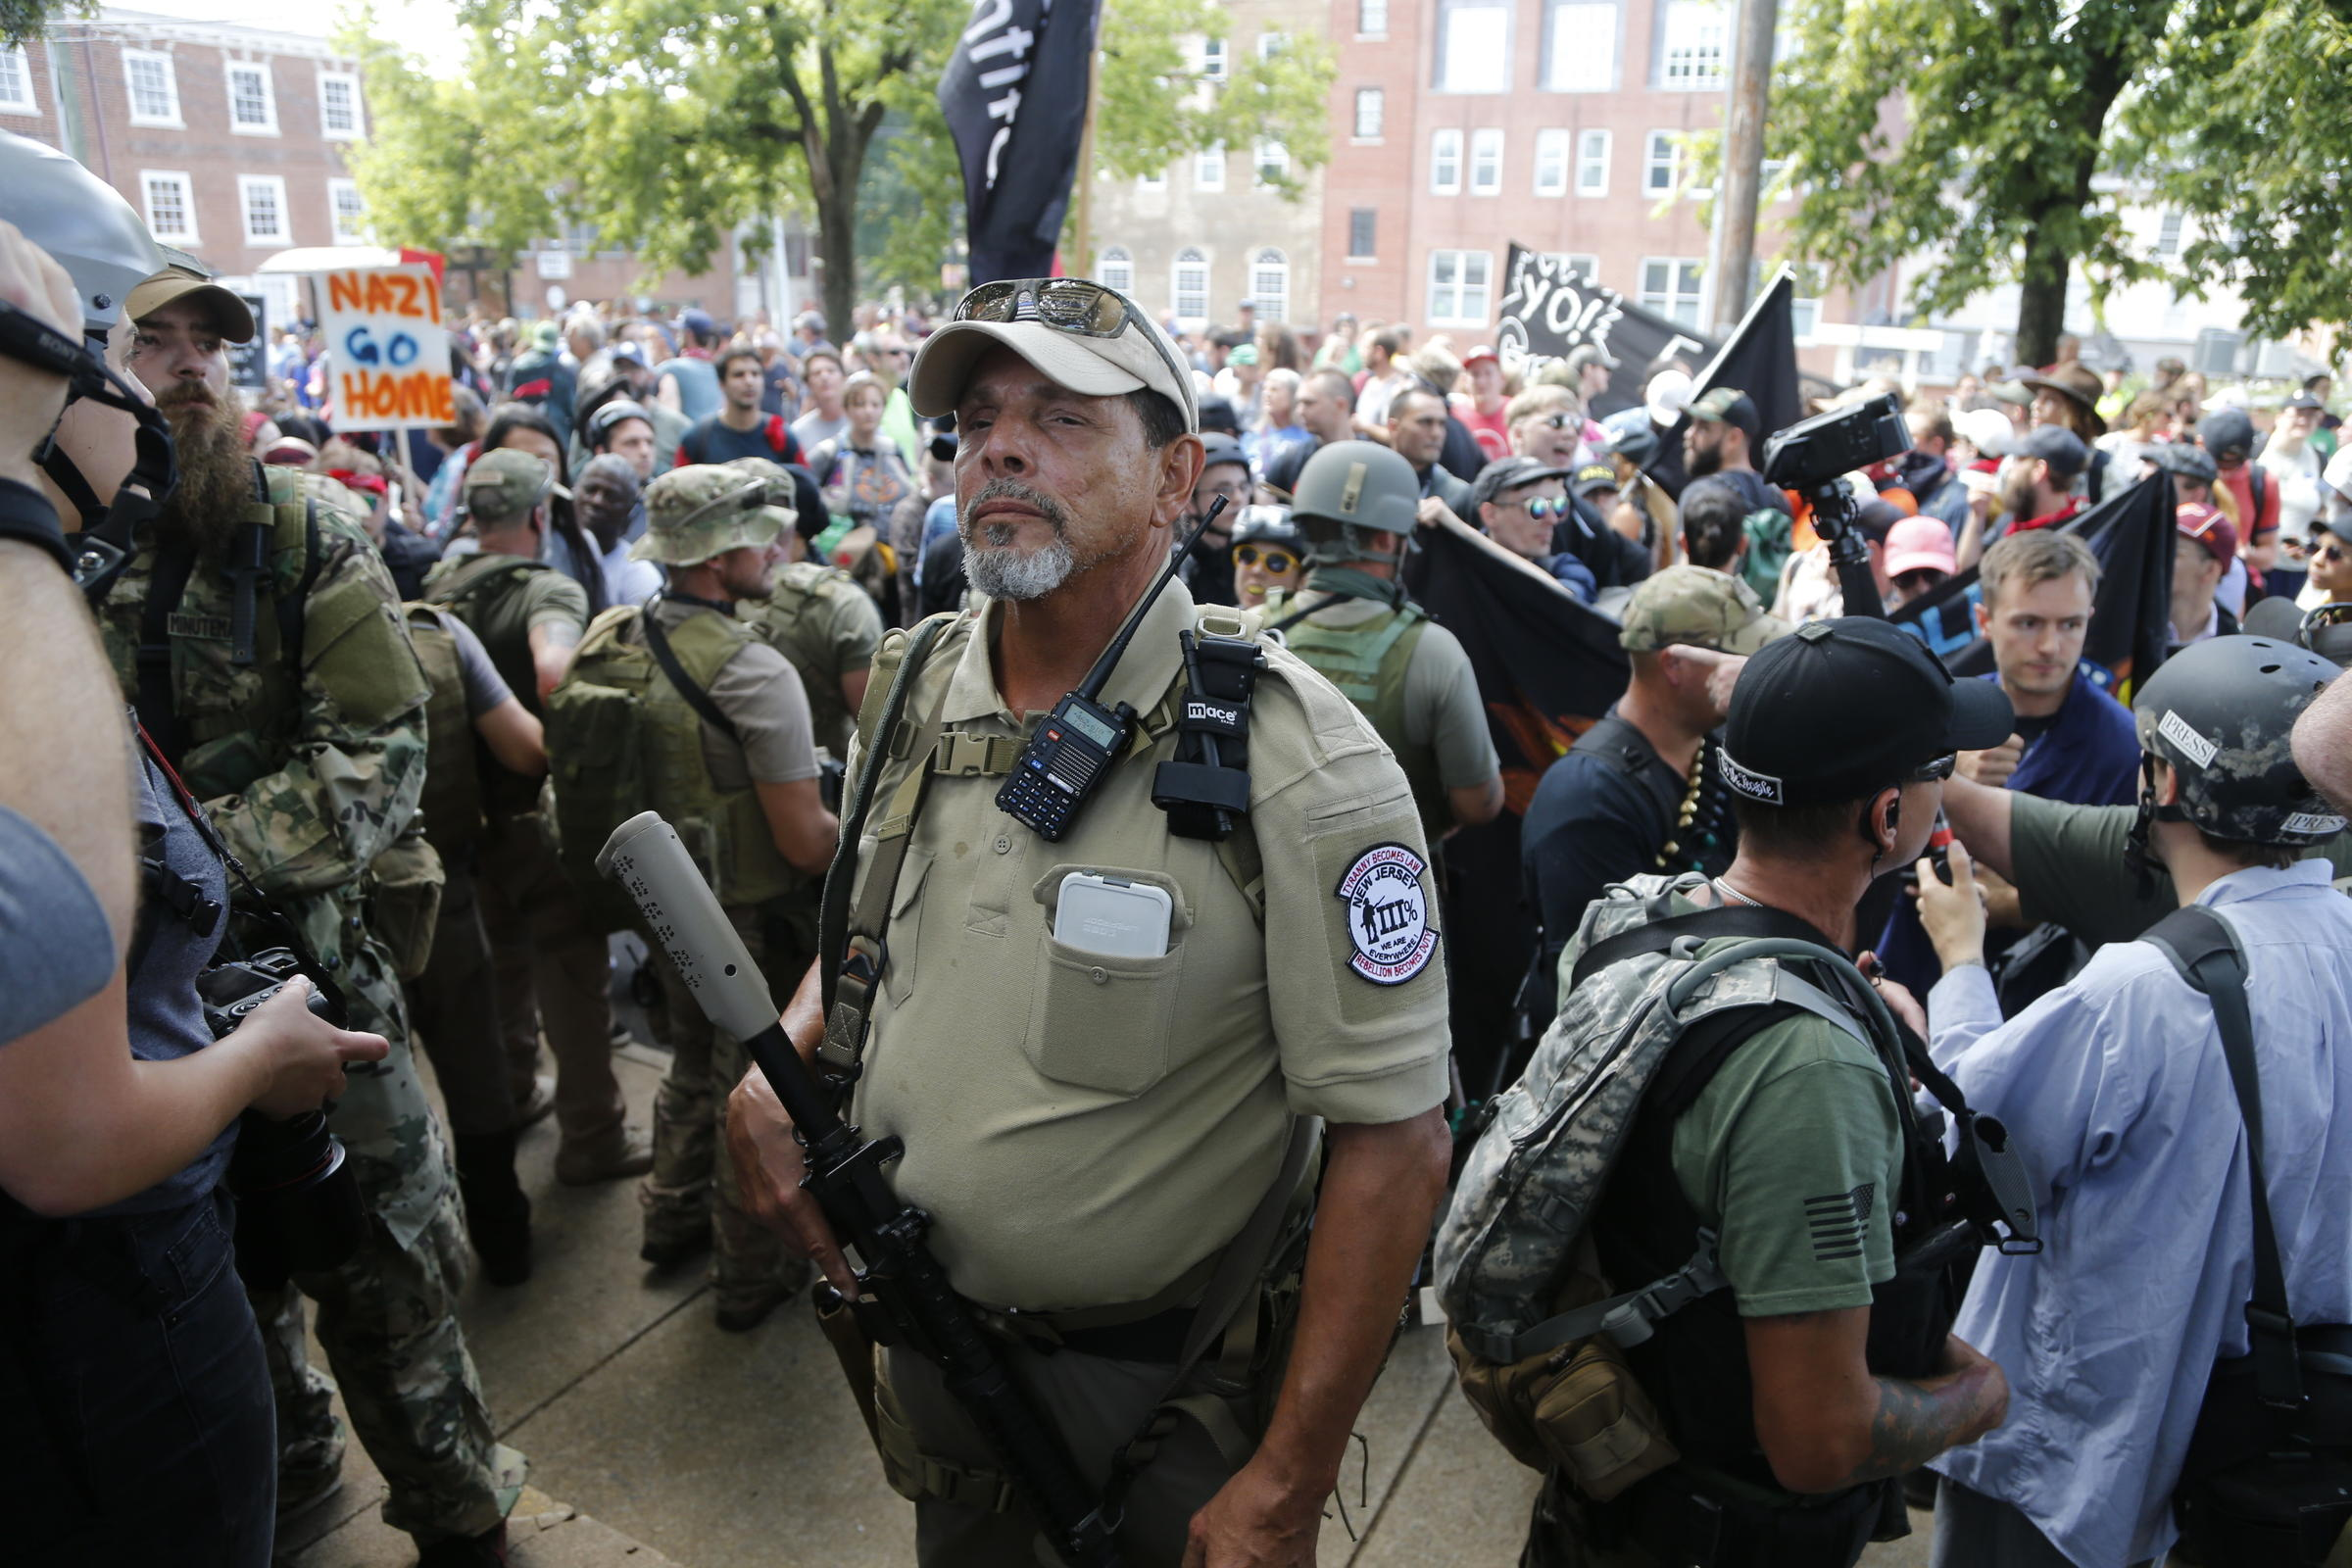 Charlottesville Revisited: White Nationalists Hold New Torch-Lit Protest